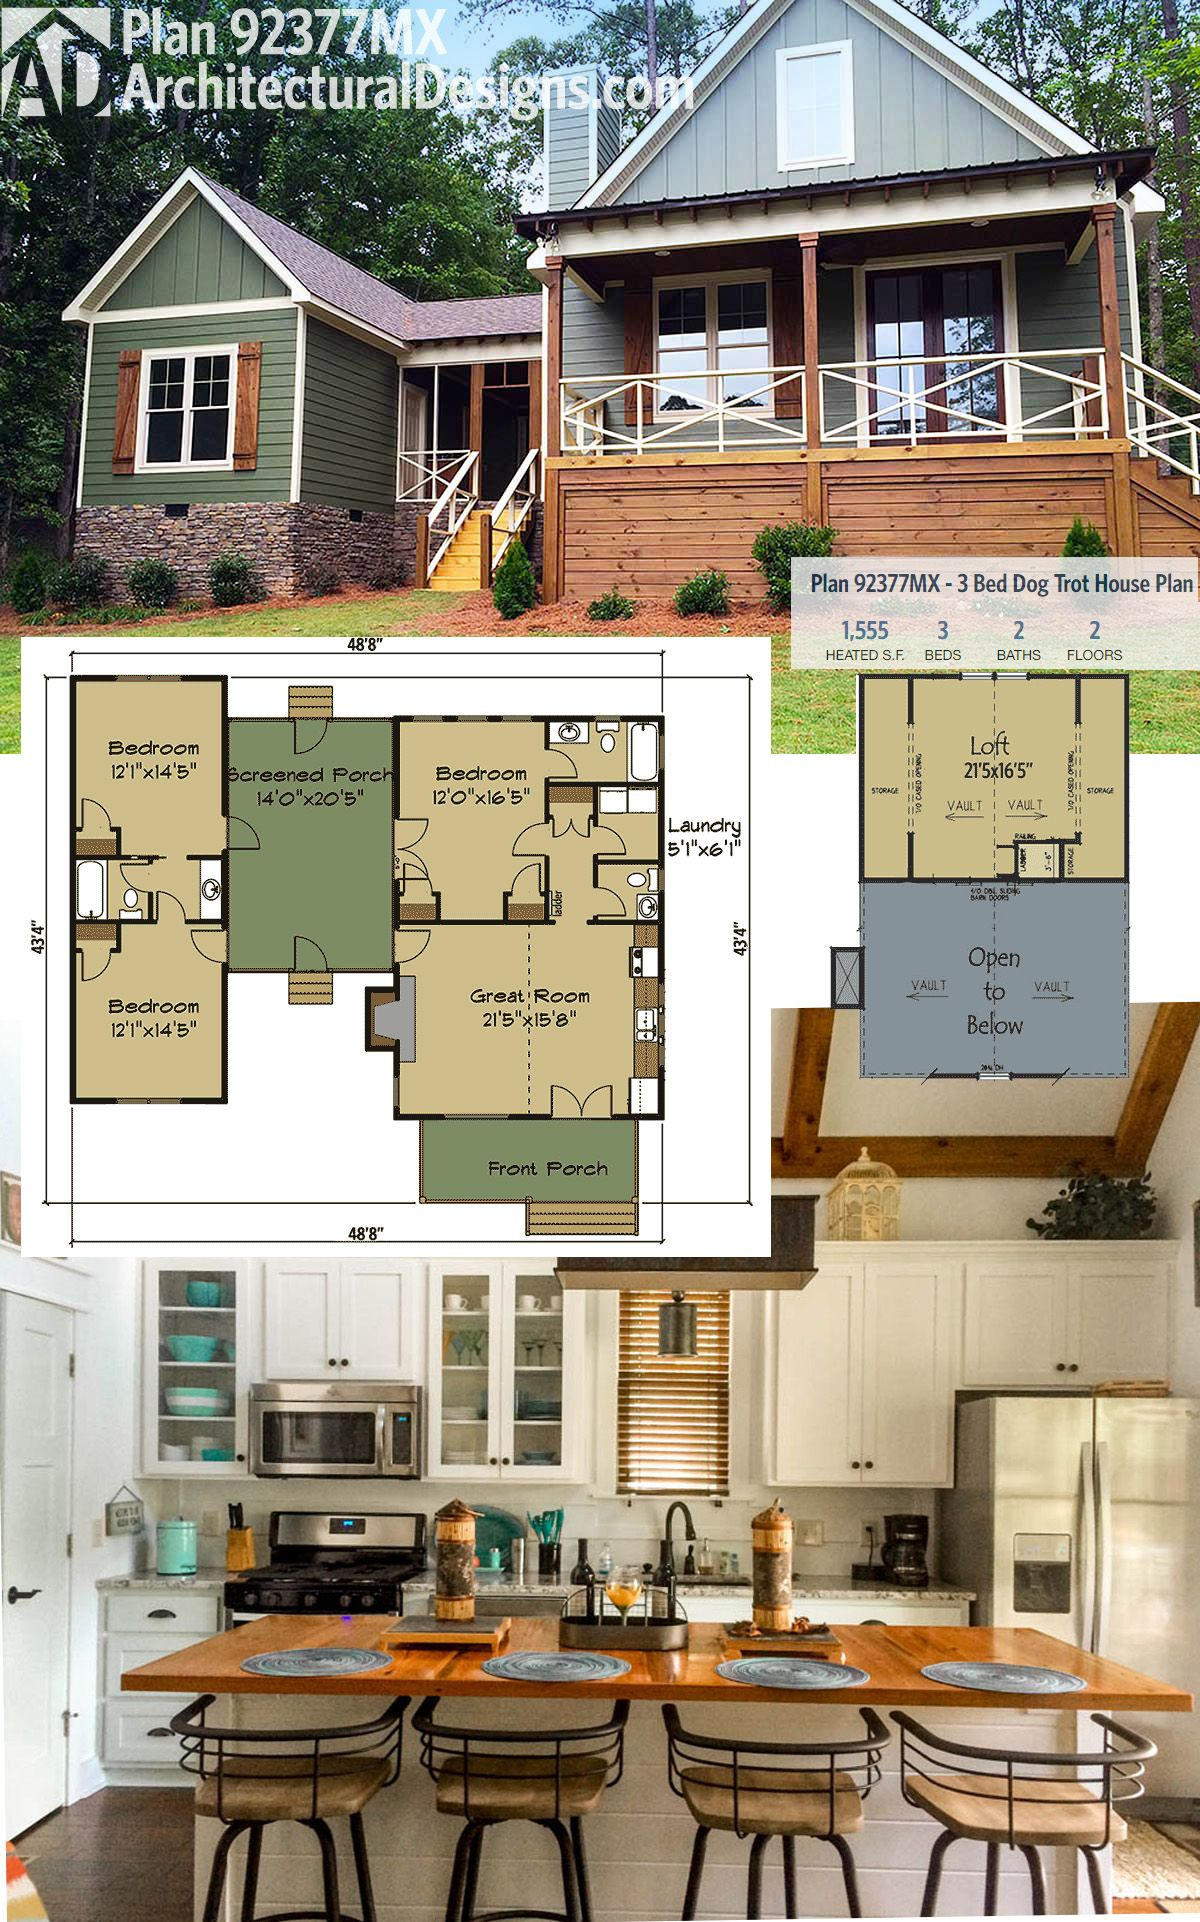 Plan 92377MX: 3 Bed Dog Trot House Plan with Sleeping Loft | Dog ...